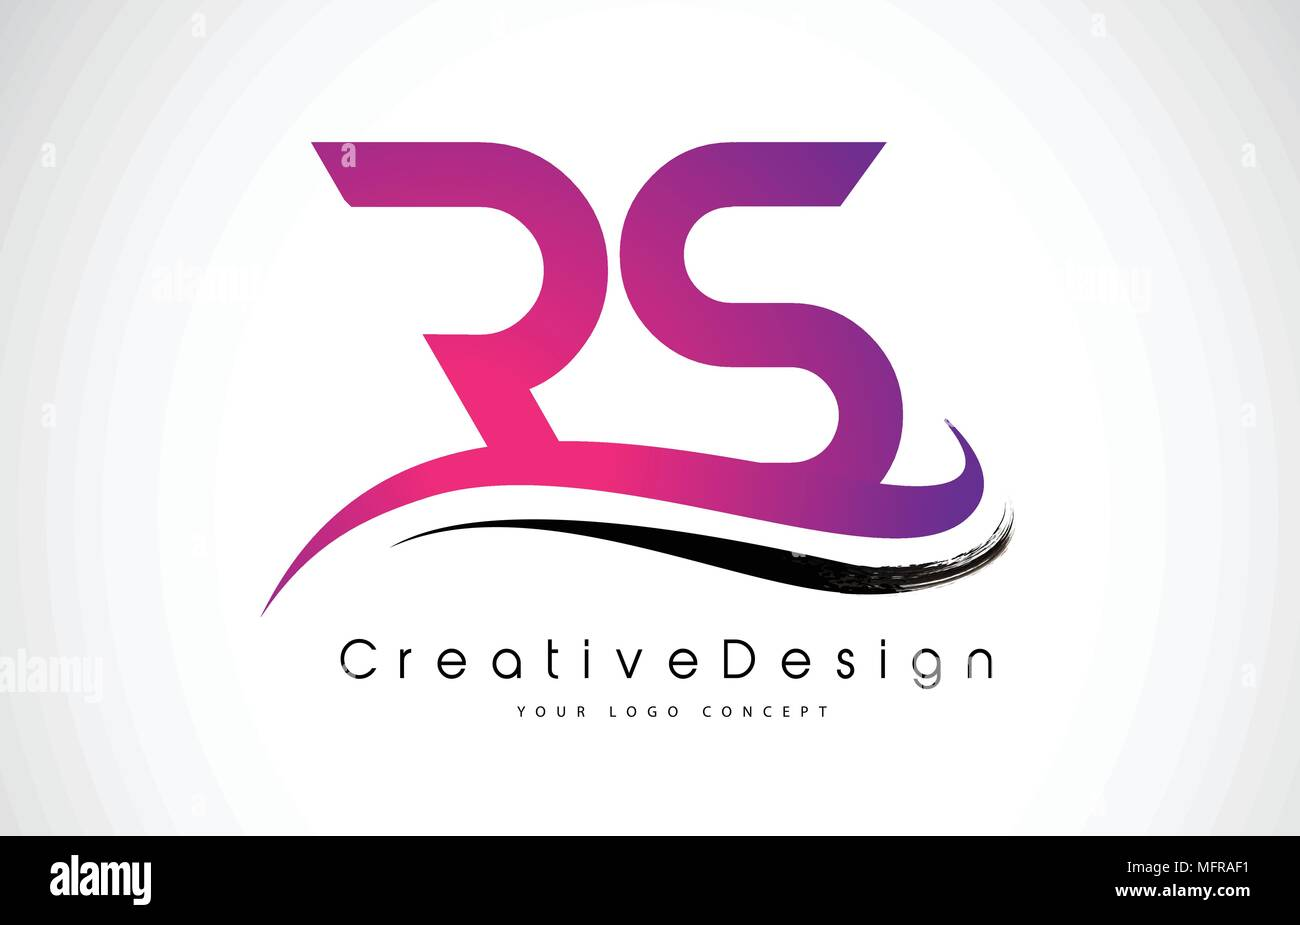 RS R S Letter Logo Design in Black Colors. Creative Modern Letters ...